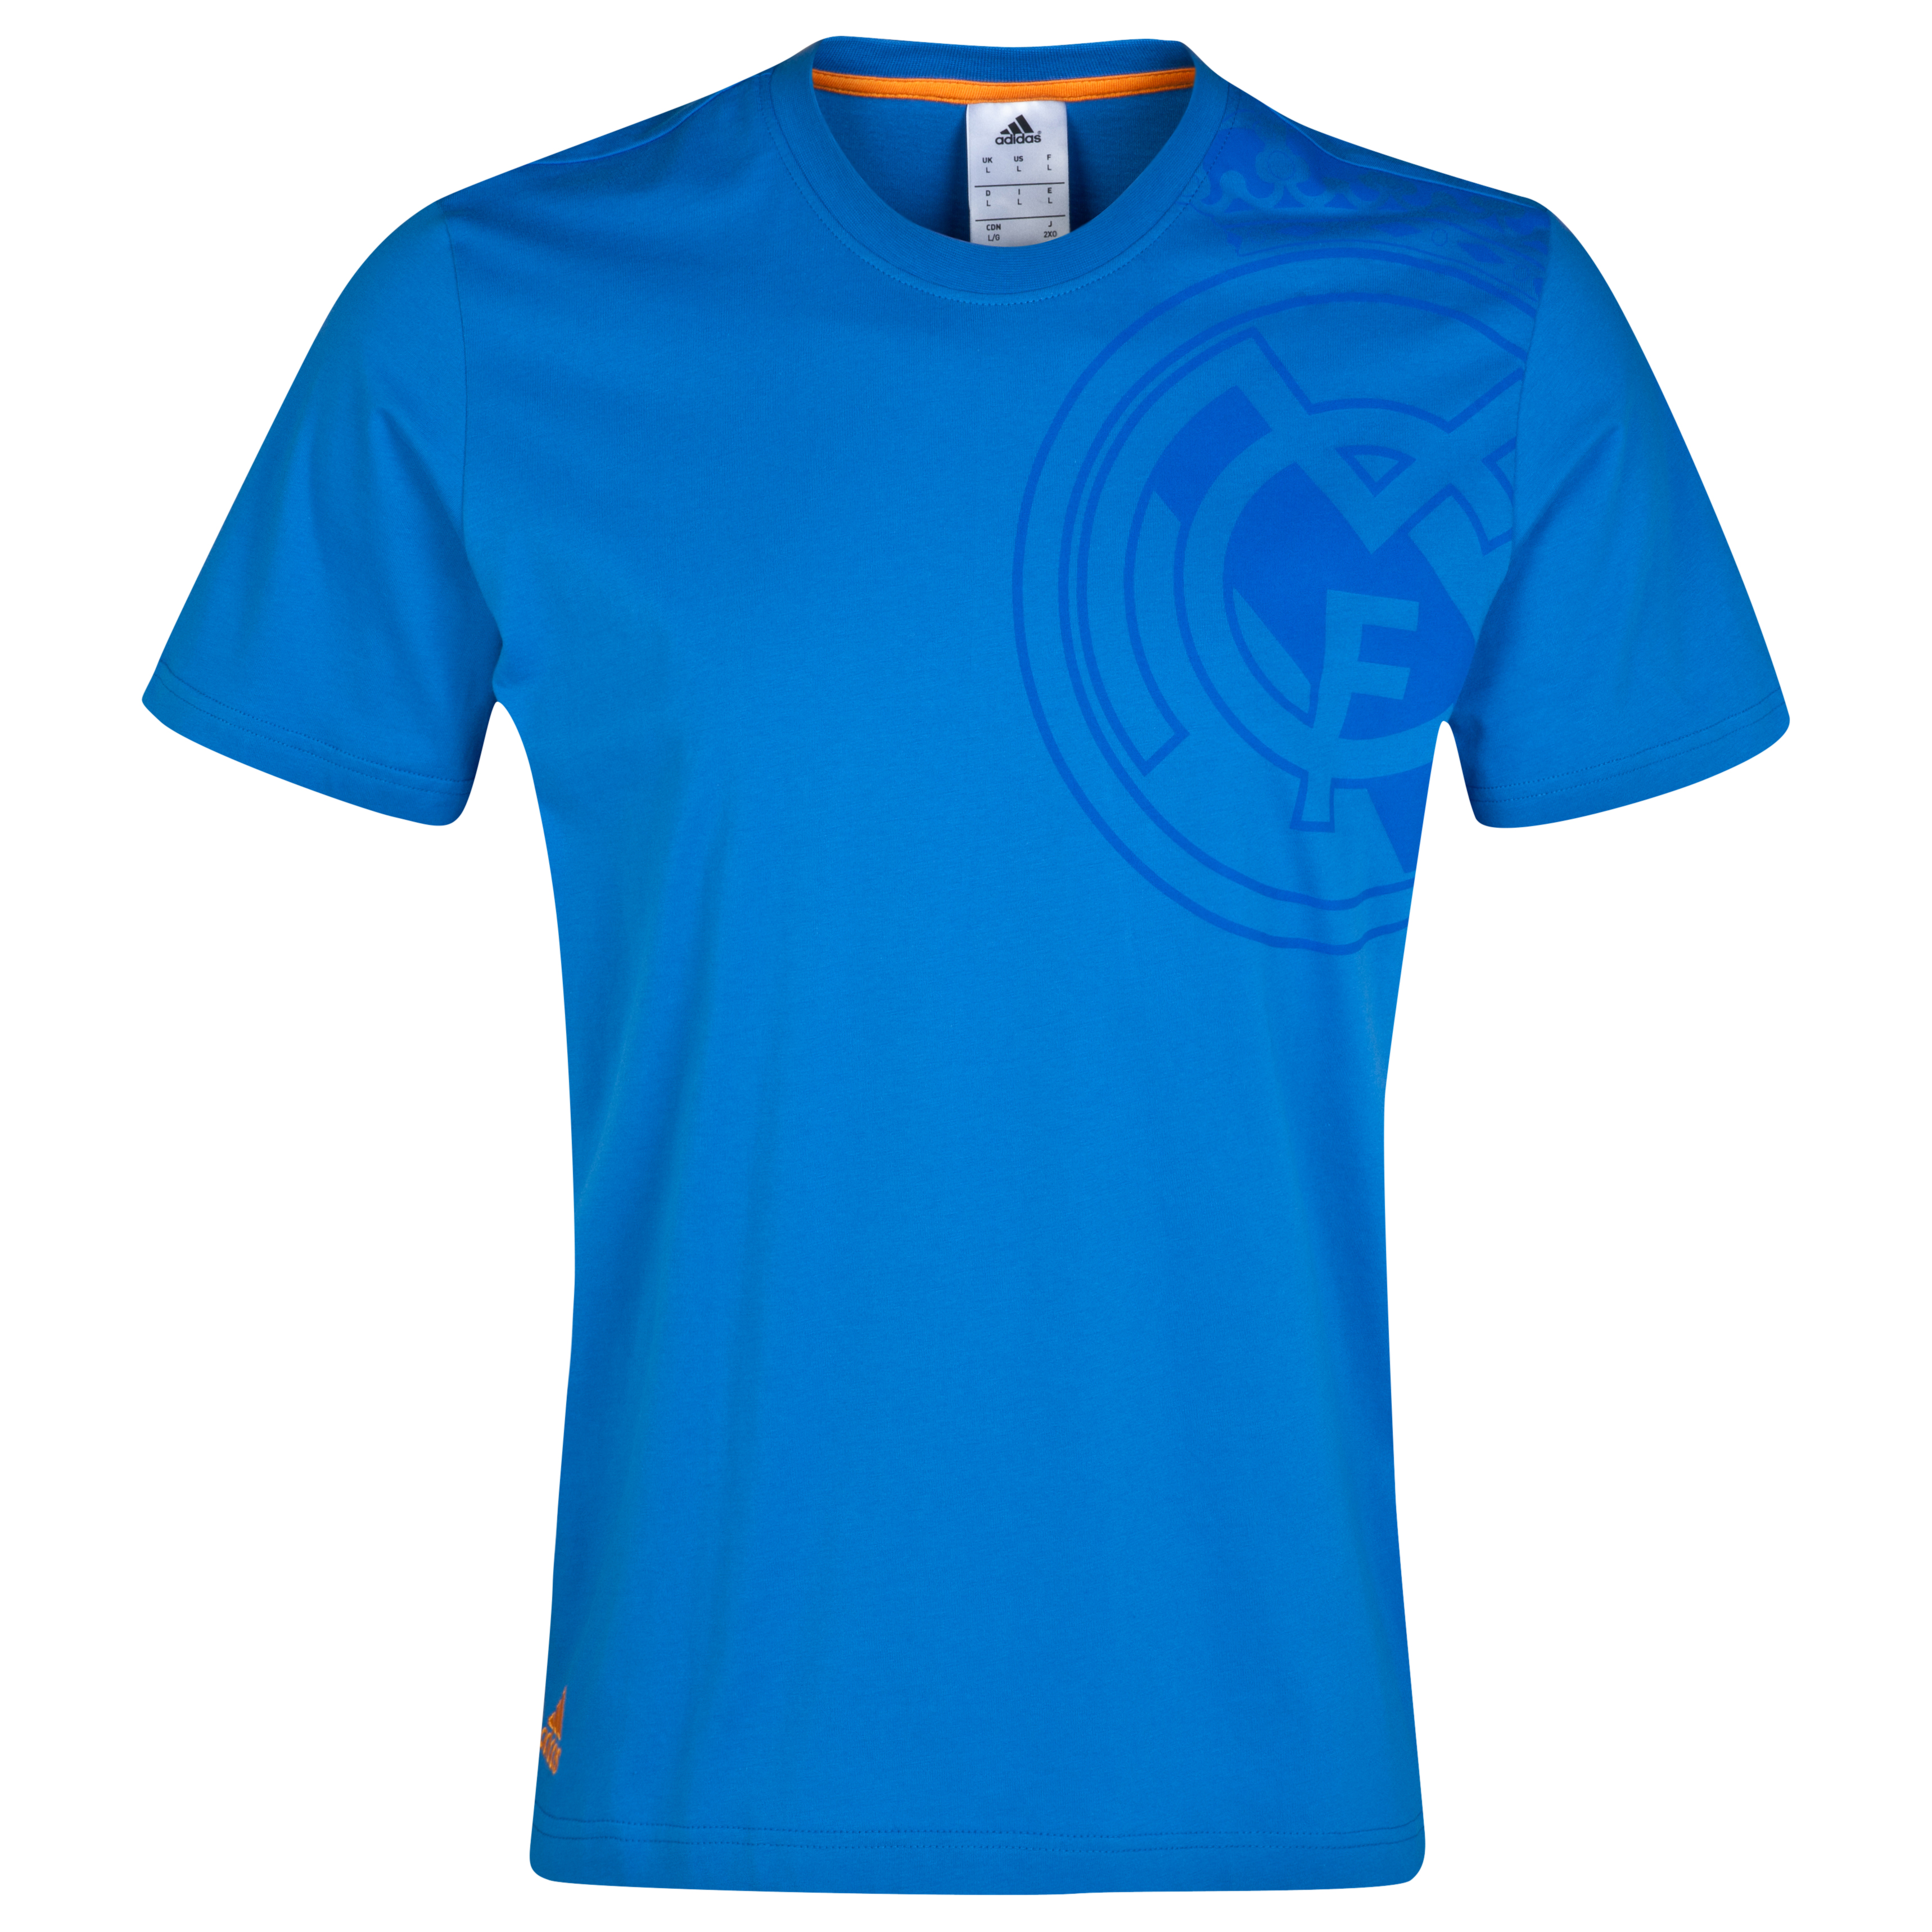 Real Madrid Graphic T-Shirt Blue